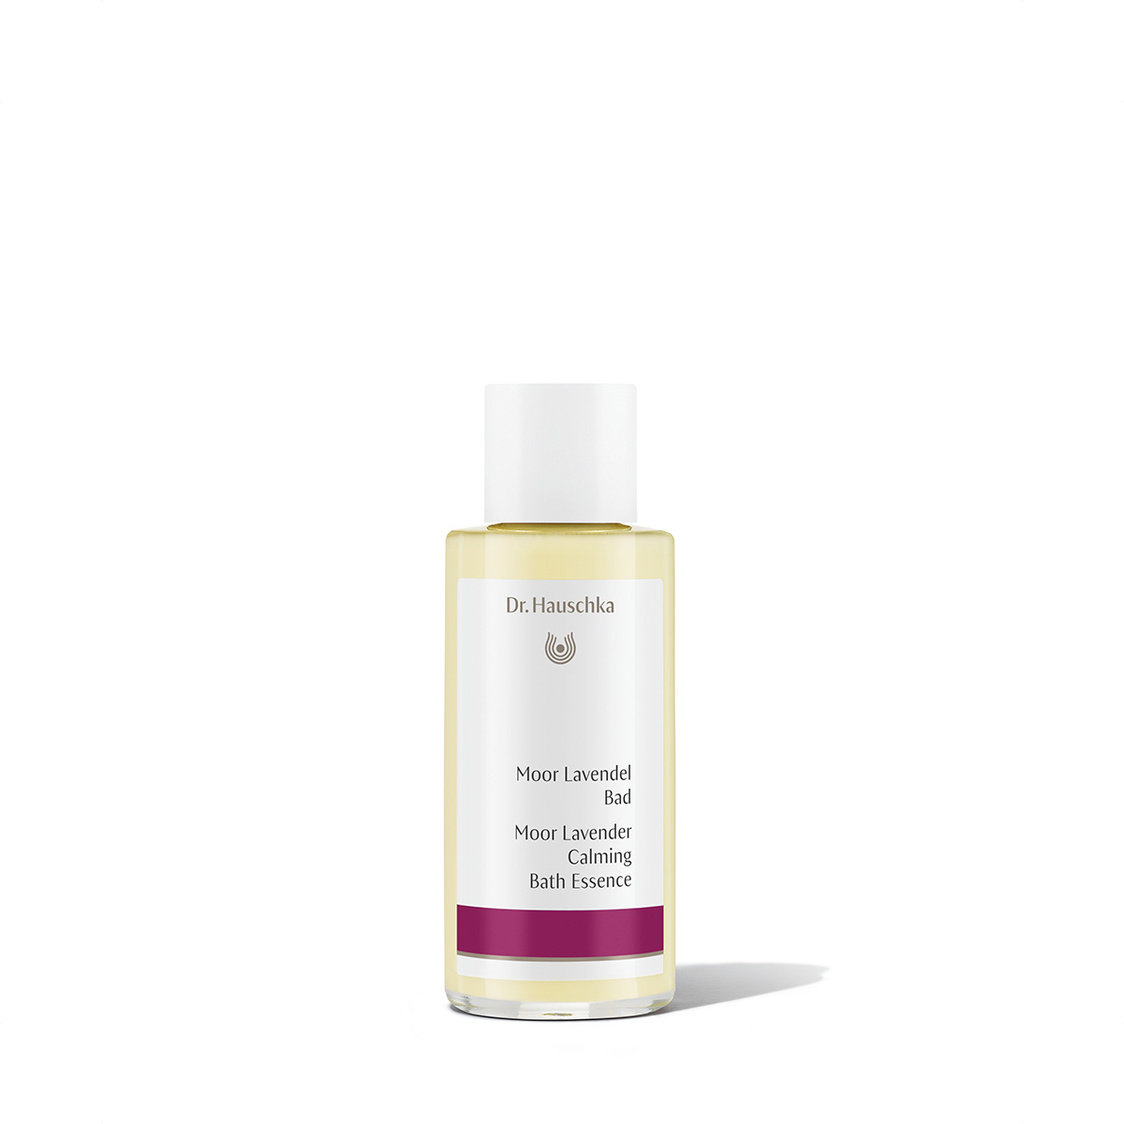 DrHauschka Moor Lavender Calming Bath Essence 100ml